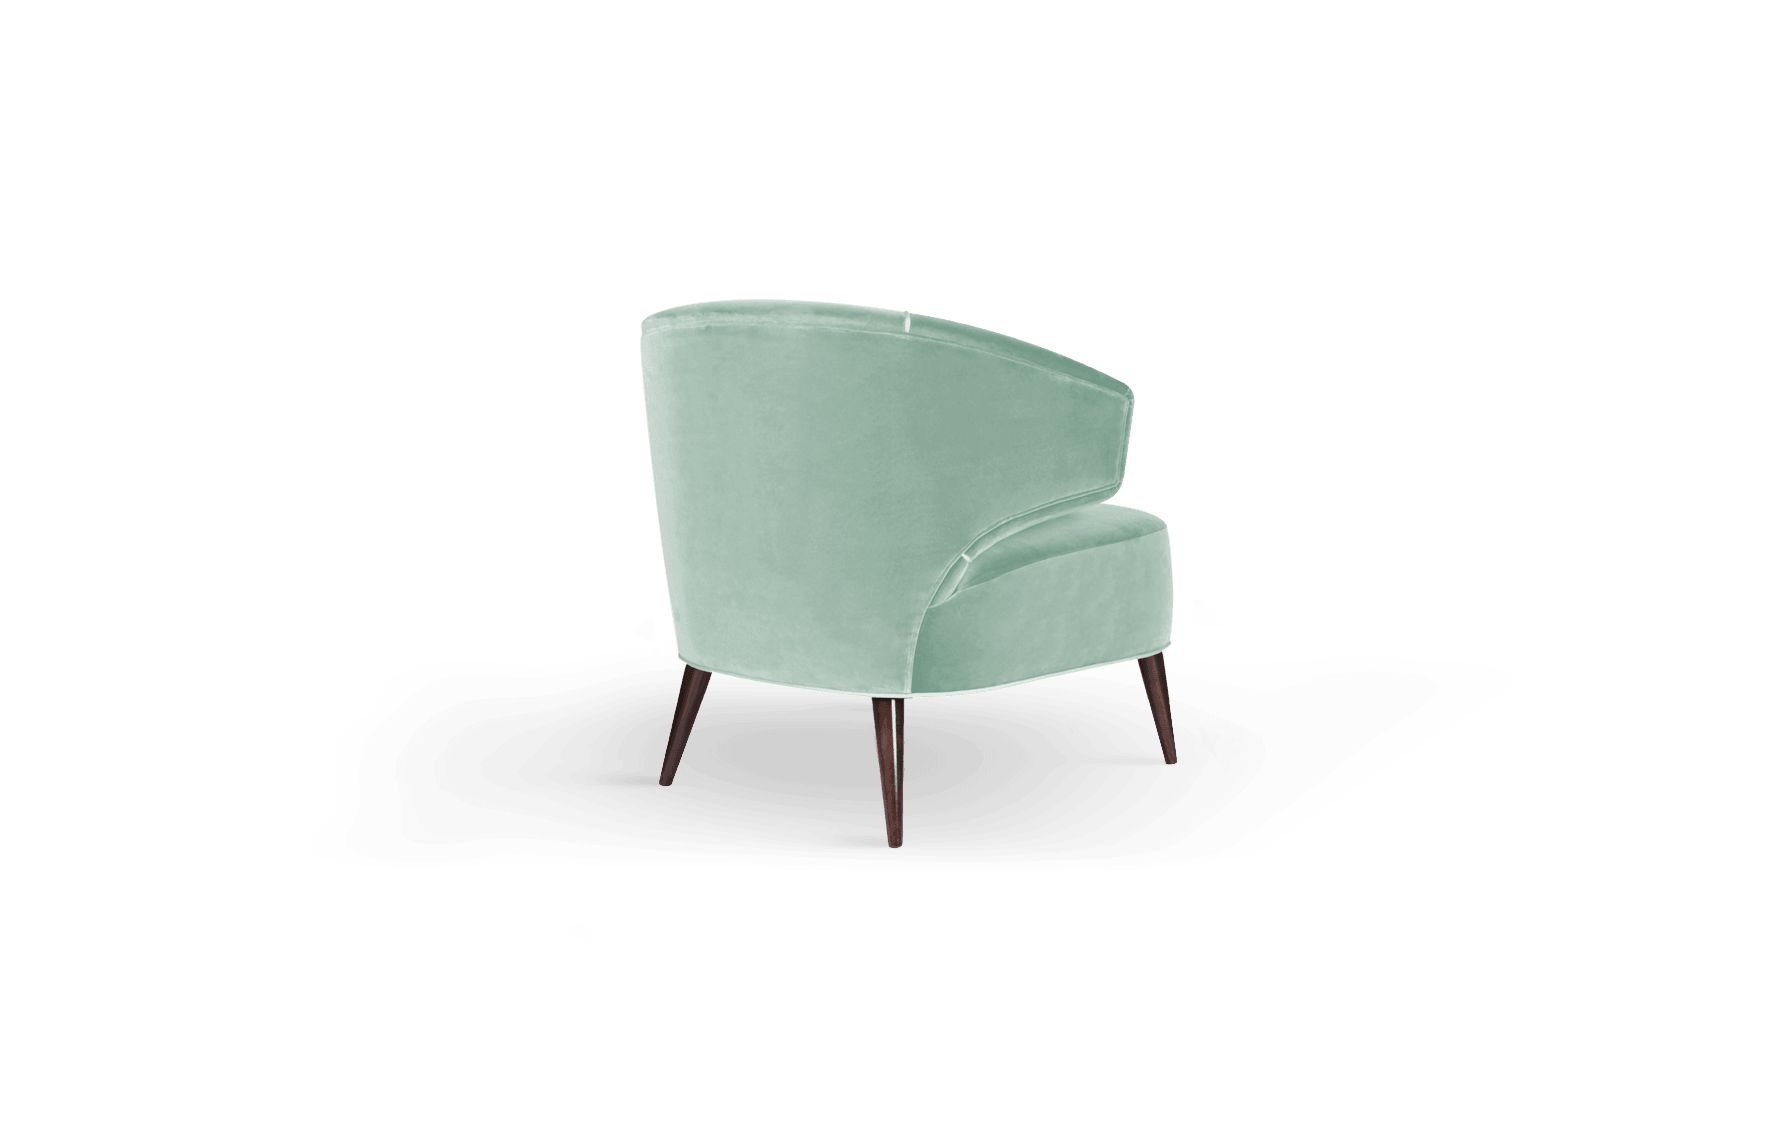 Tippi Mid-Century Modern Armchair in green cotton velvet